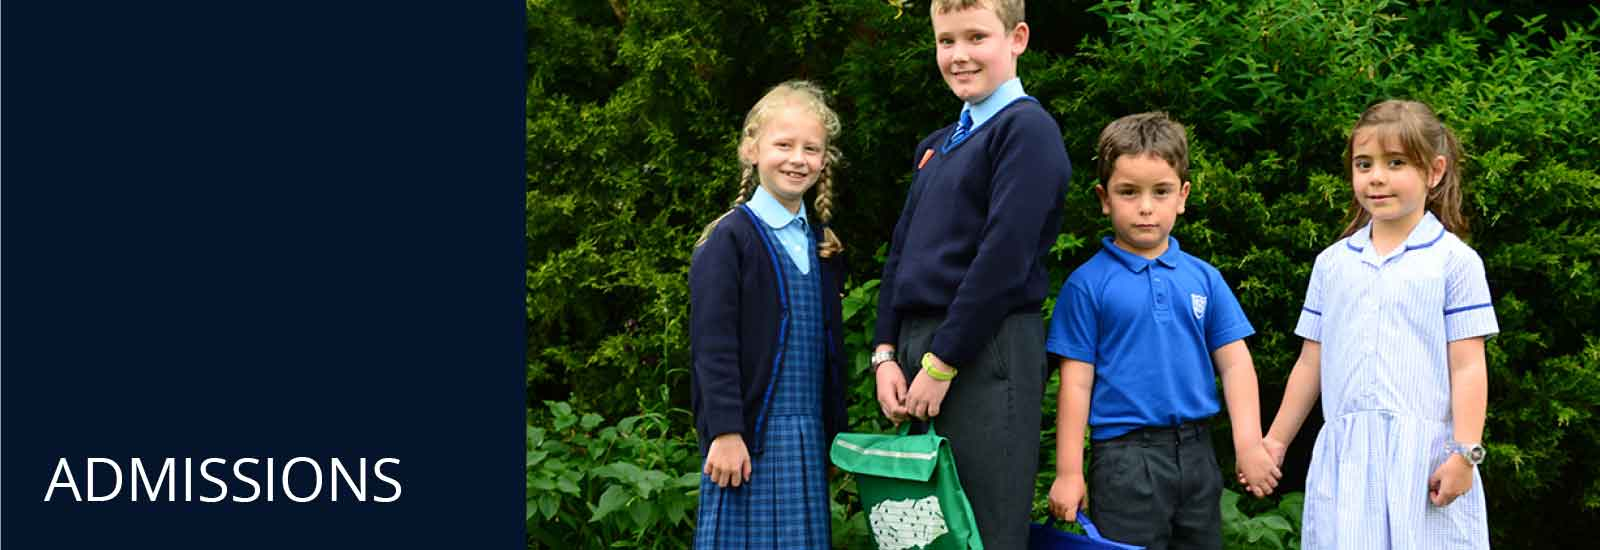 Independent-Primary-School - Windrush Valley School - Admissions